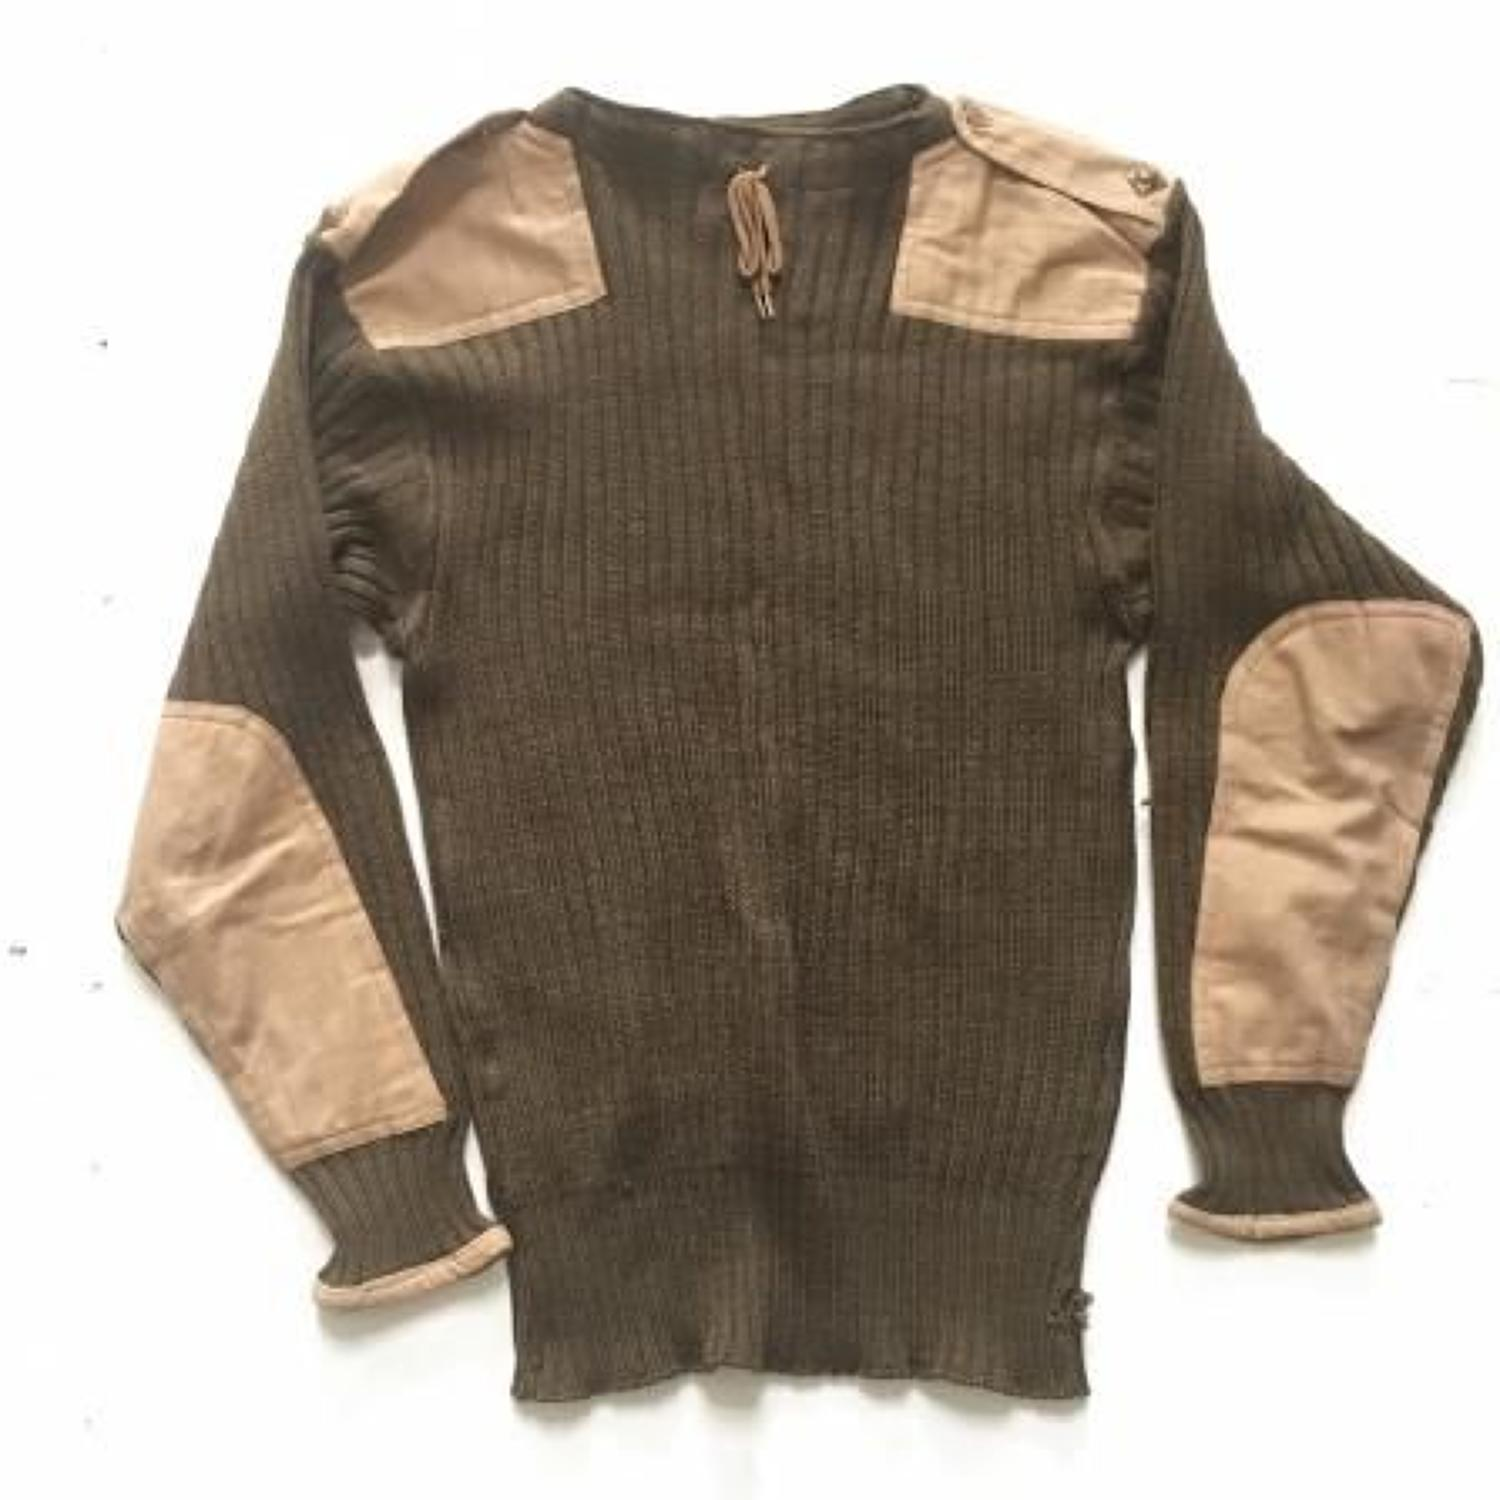 WW2 Pattern Cold war Period Special Forces Army Jumper.